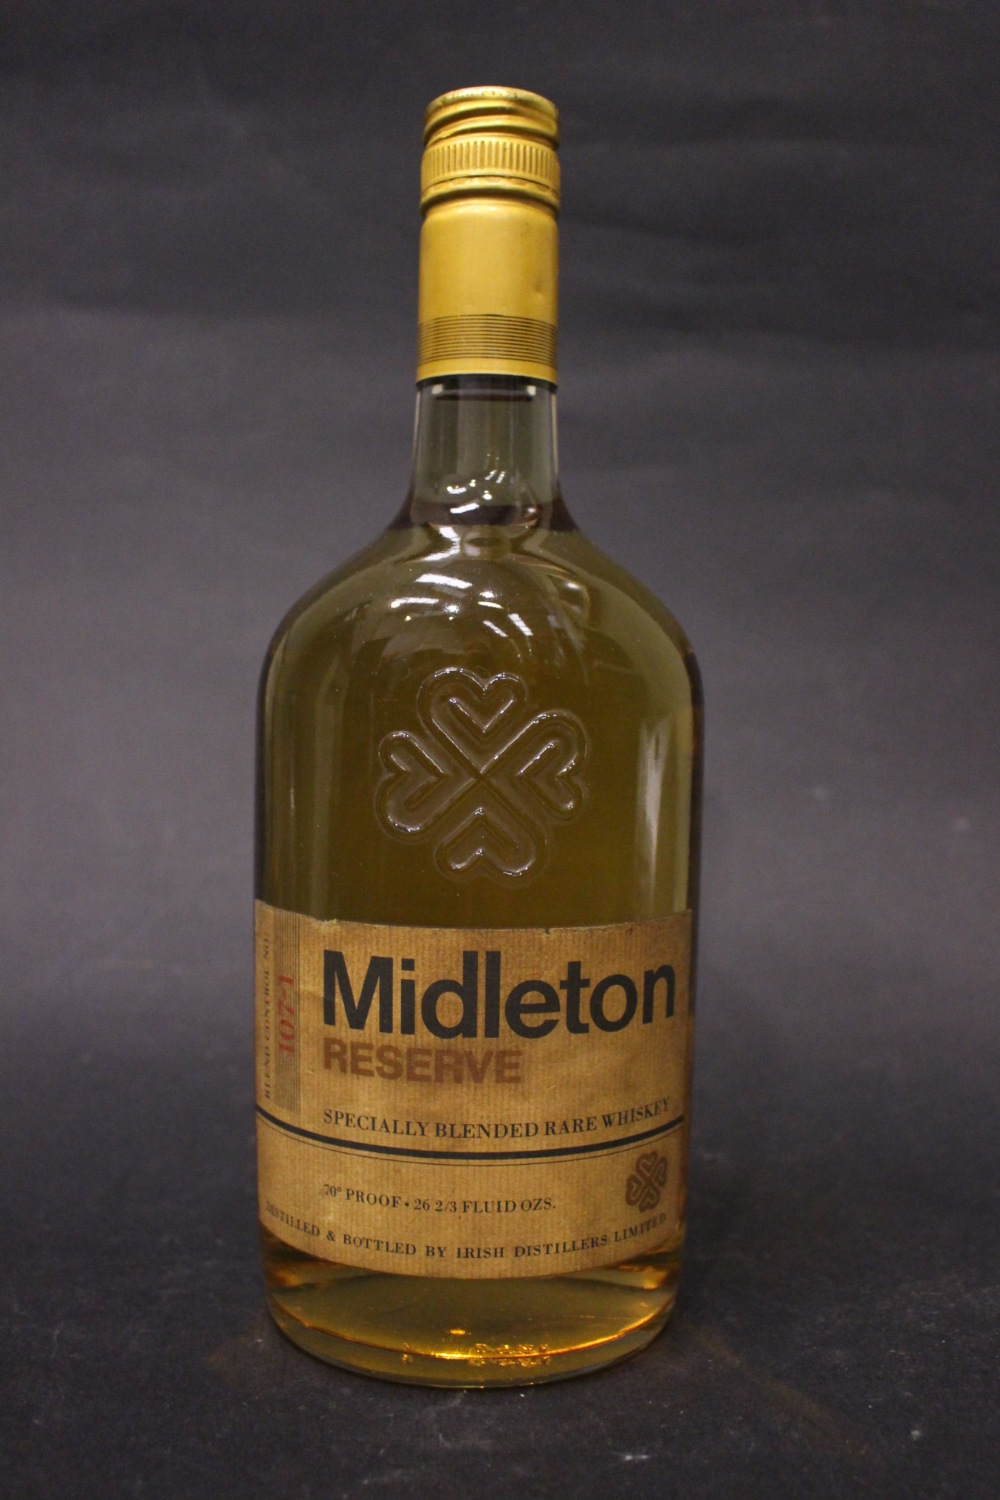 Lot 57 - A BOTTLE OF 'MIDLETON RESERVE', blend control no. 107-1,, specially blended rare Irish whiskey,